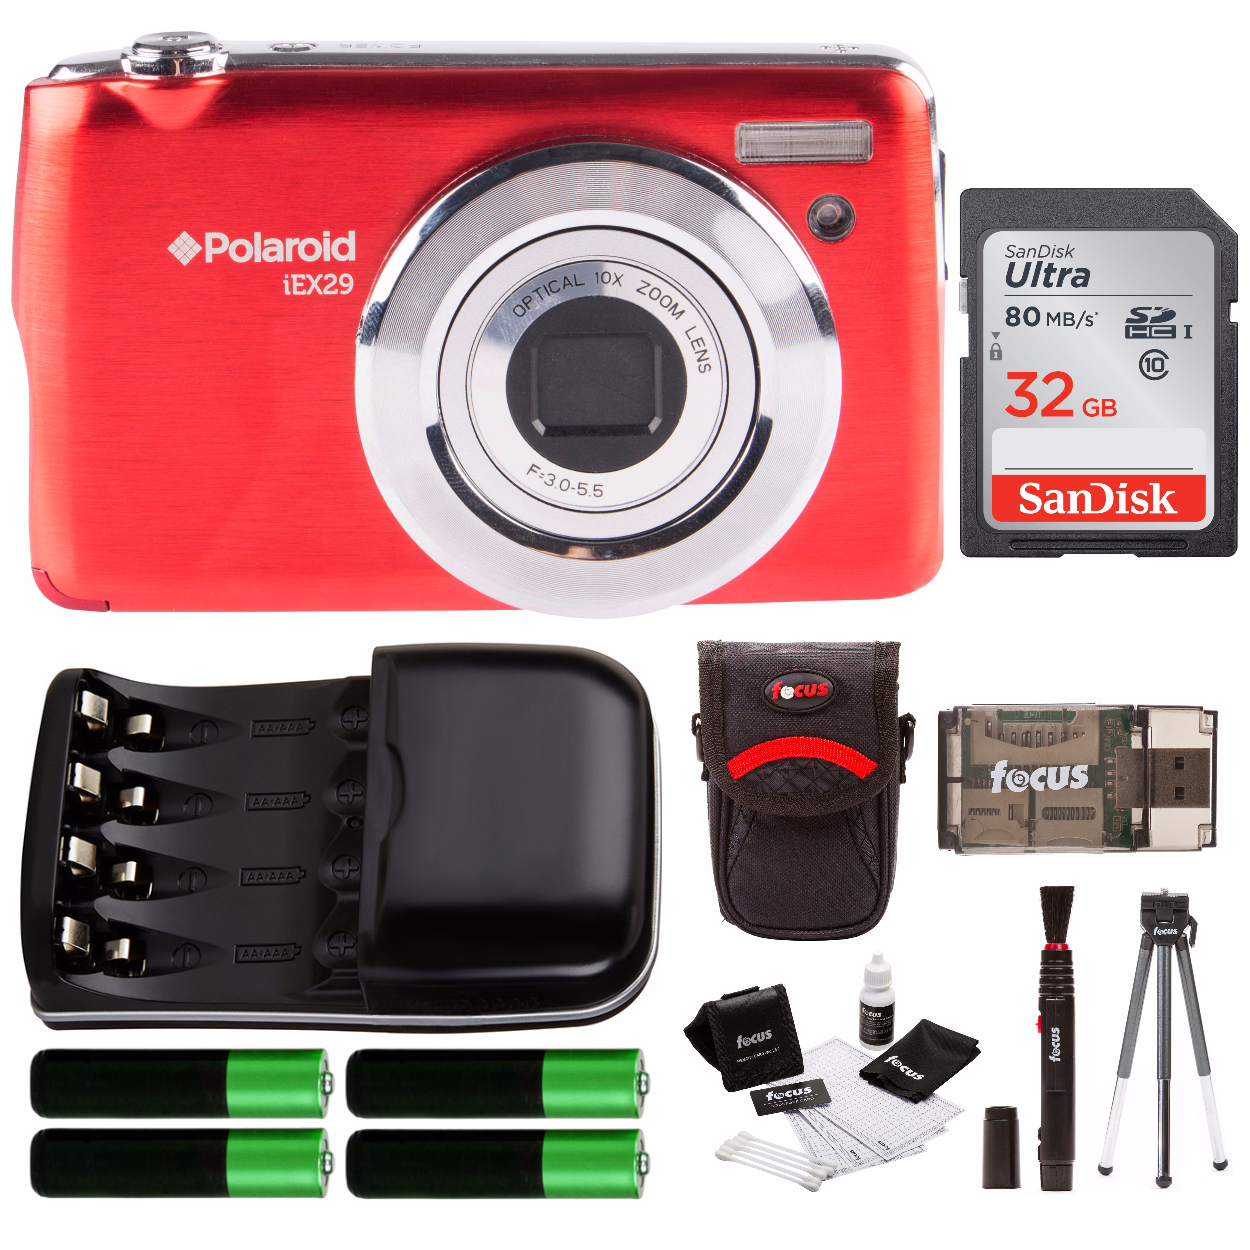 Polaroid iE X29 Digital Camera with Accessory Starter Kit Red by Sakar